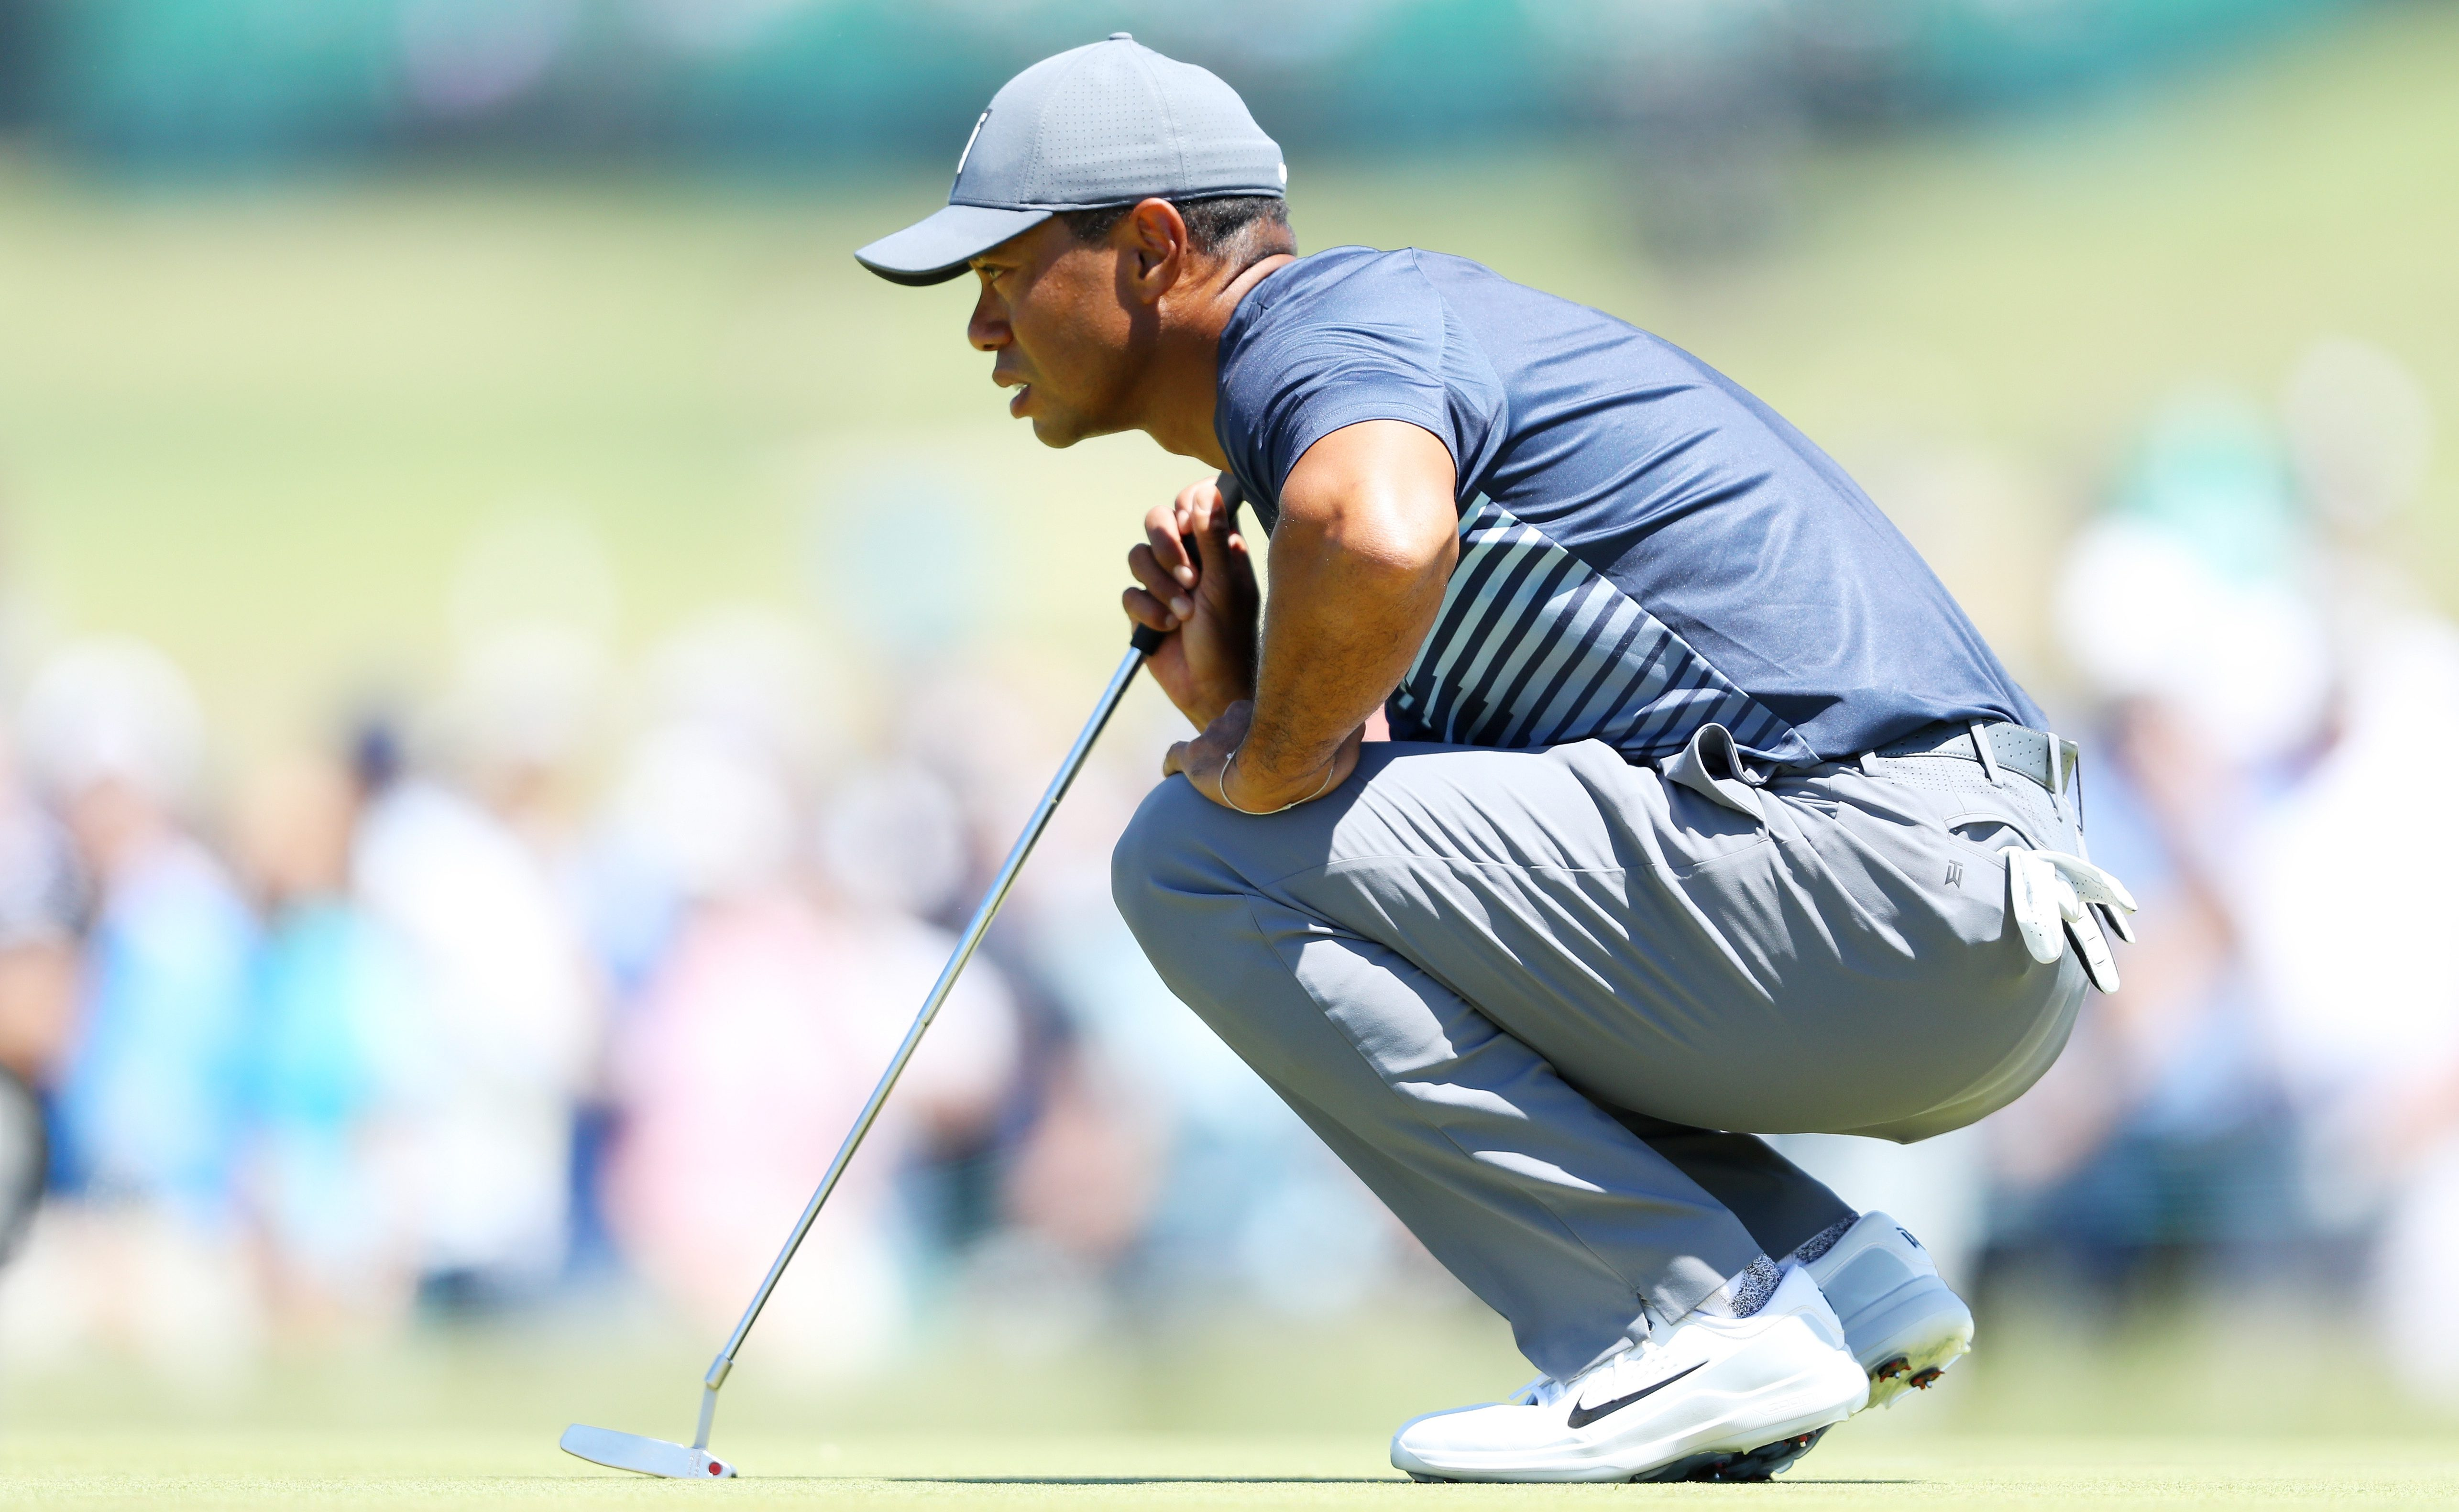 SOUTHAMPTON, NY - JUNE 14: Tiger Woods of the United States lines up his putt on the first green during the first round of the 2018 U.S. Open at Shinnecock Hills Golf Club on June 14, 2018 in Southampton, New York. (Photo by Warren Little/Getty Images)